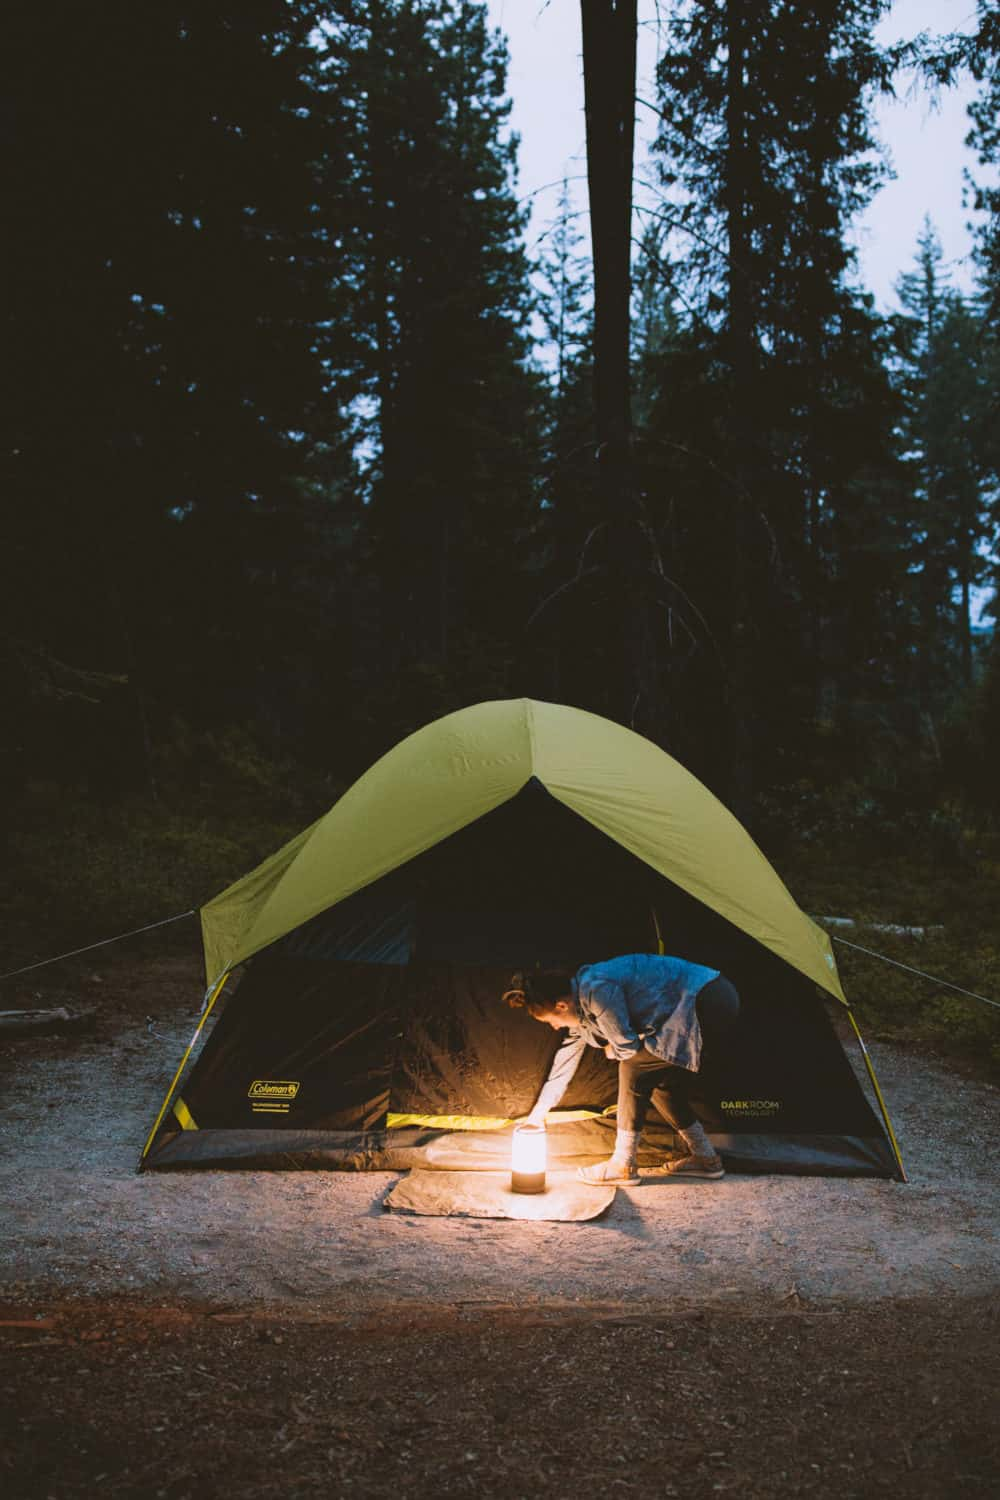 Camping tent at night with lantern